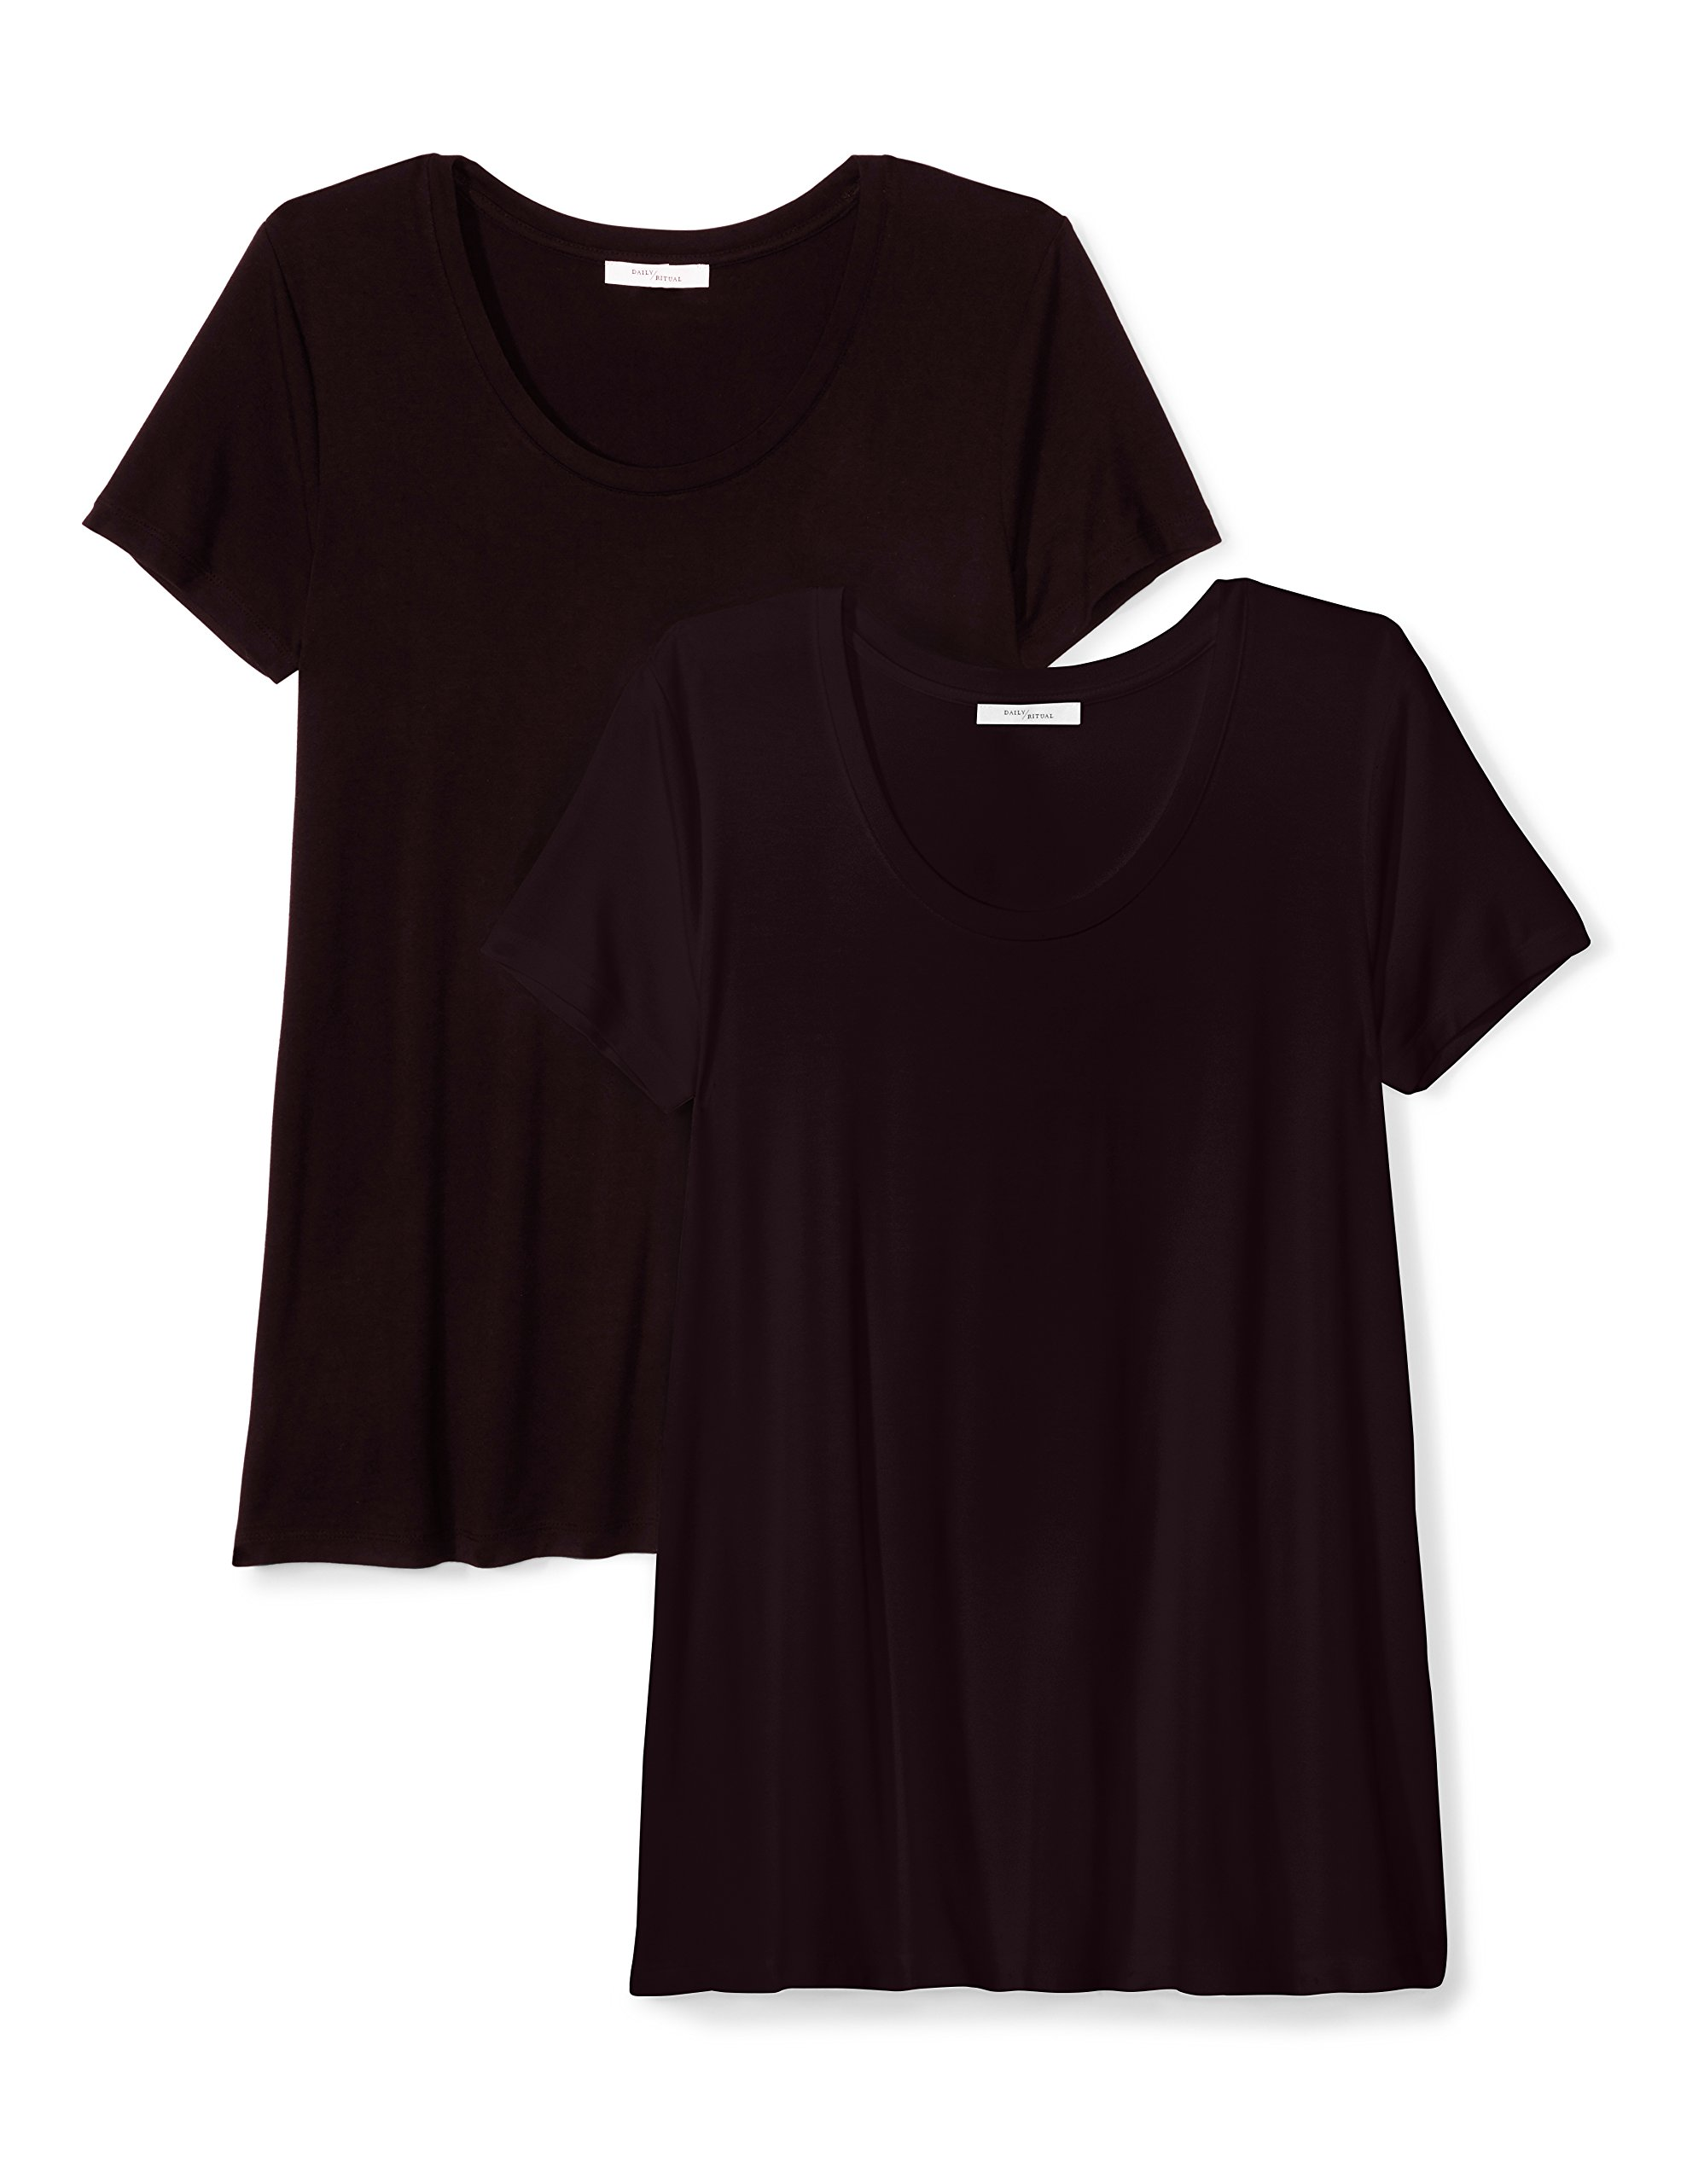 Daily Ritual Women's Standard Jersey Short-Sleeve Scoop Neck Swing T-Shirt, Black/Black, XXL